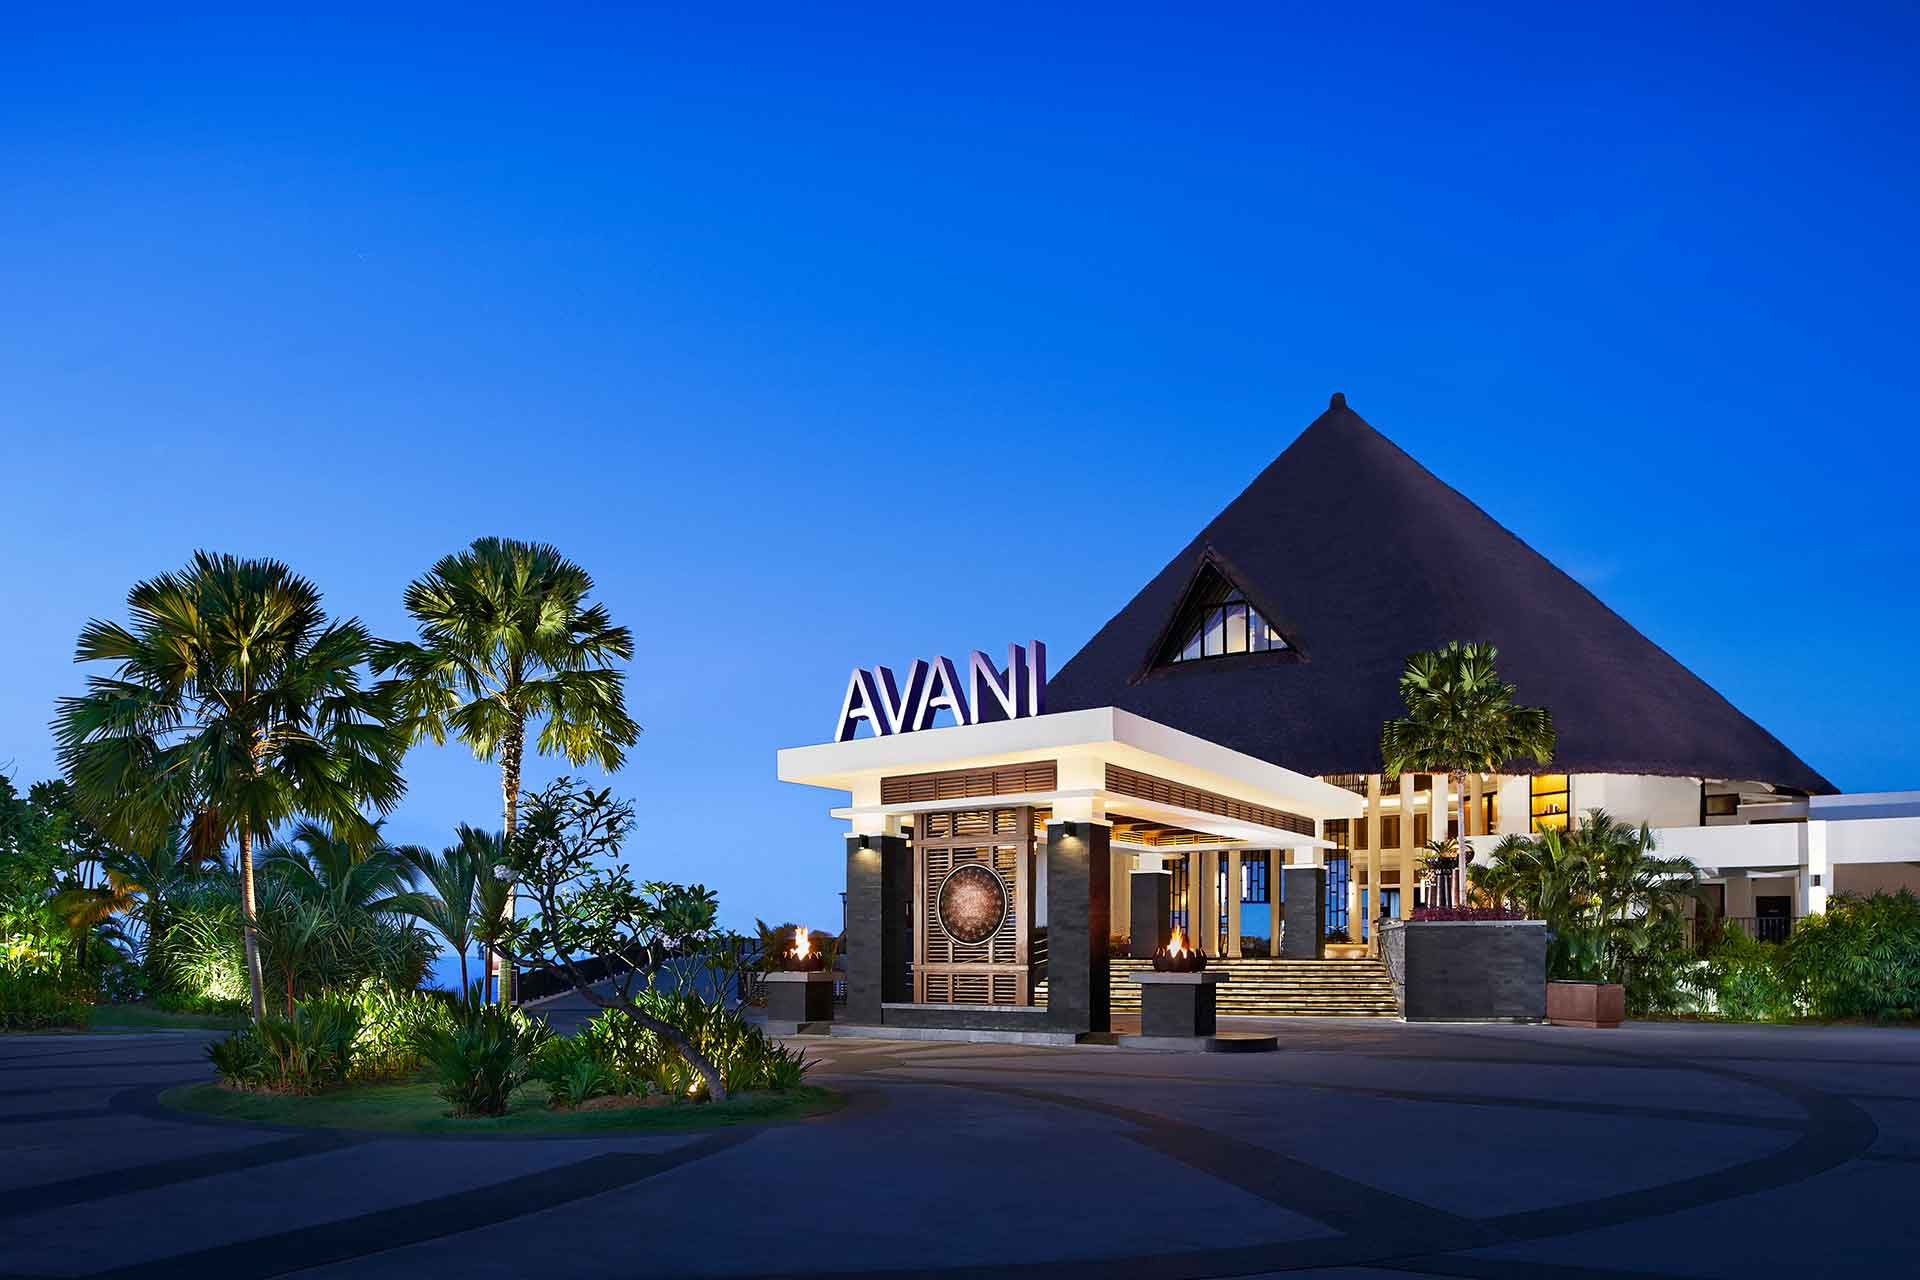 Main entrance of AVANI Sepang Goldcoast Resort